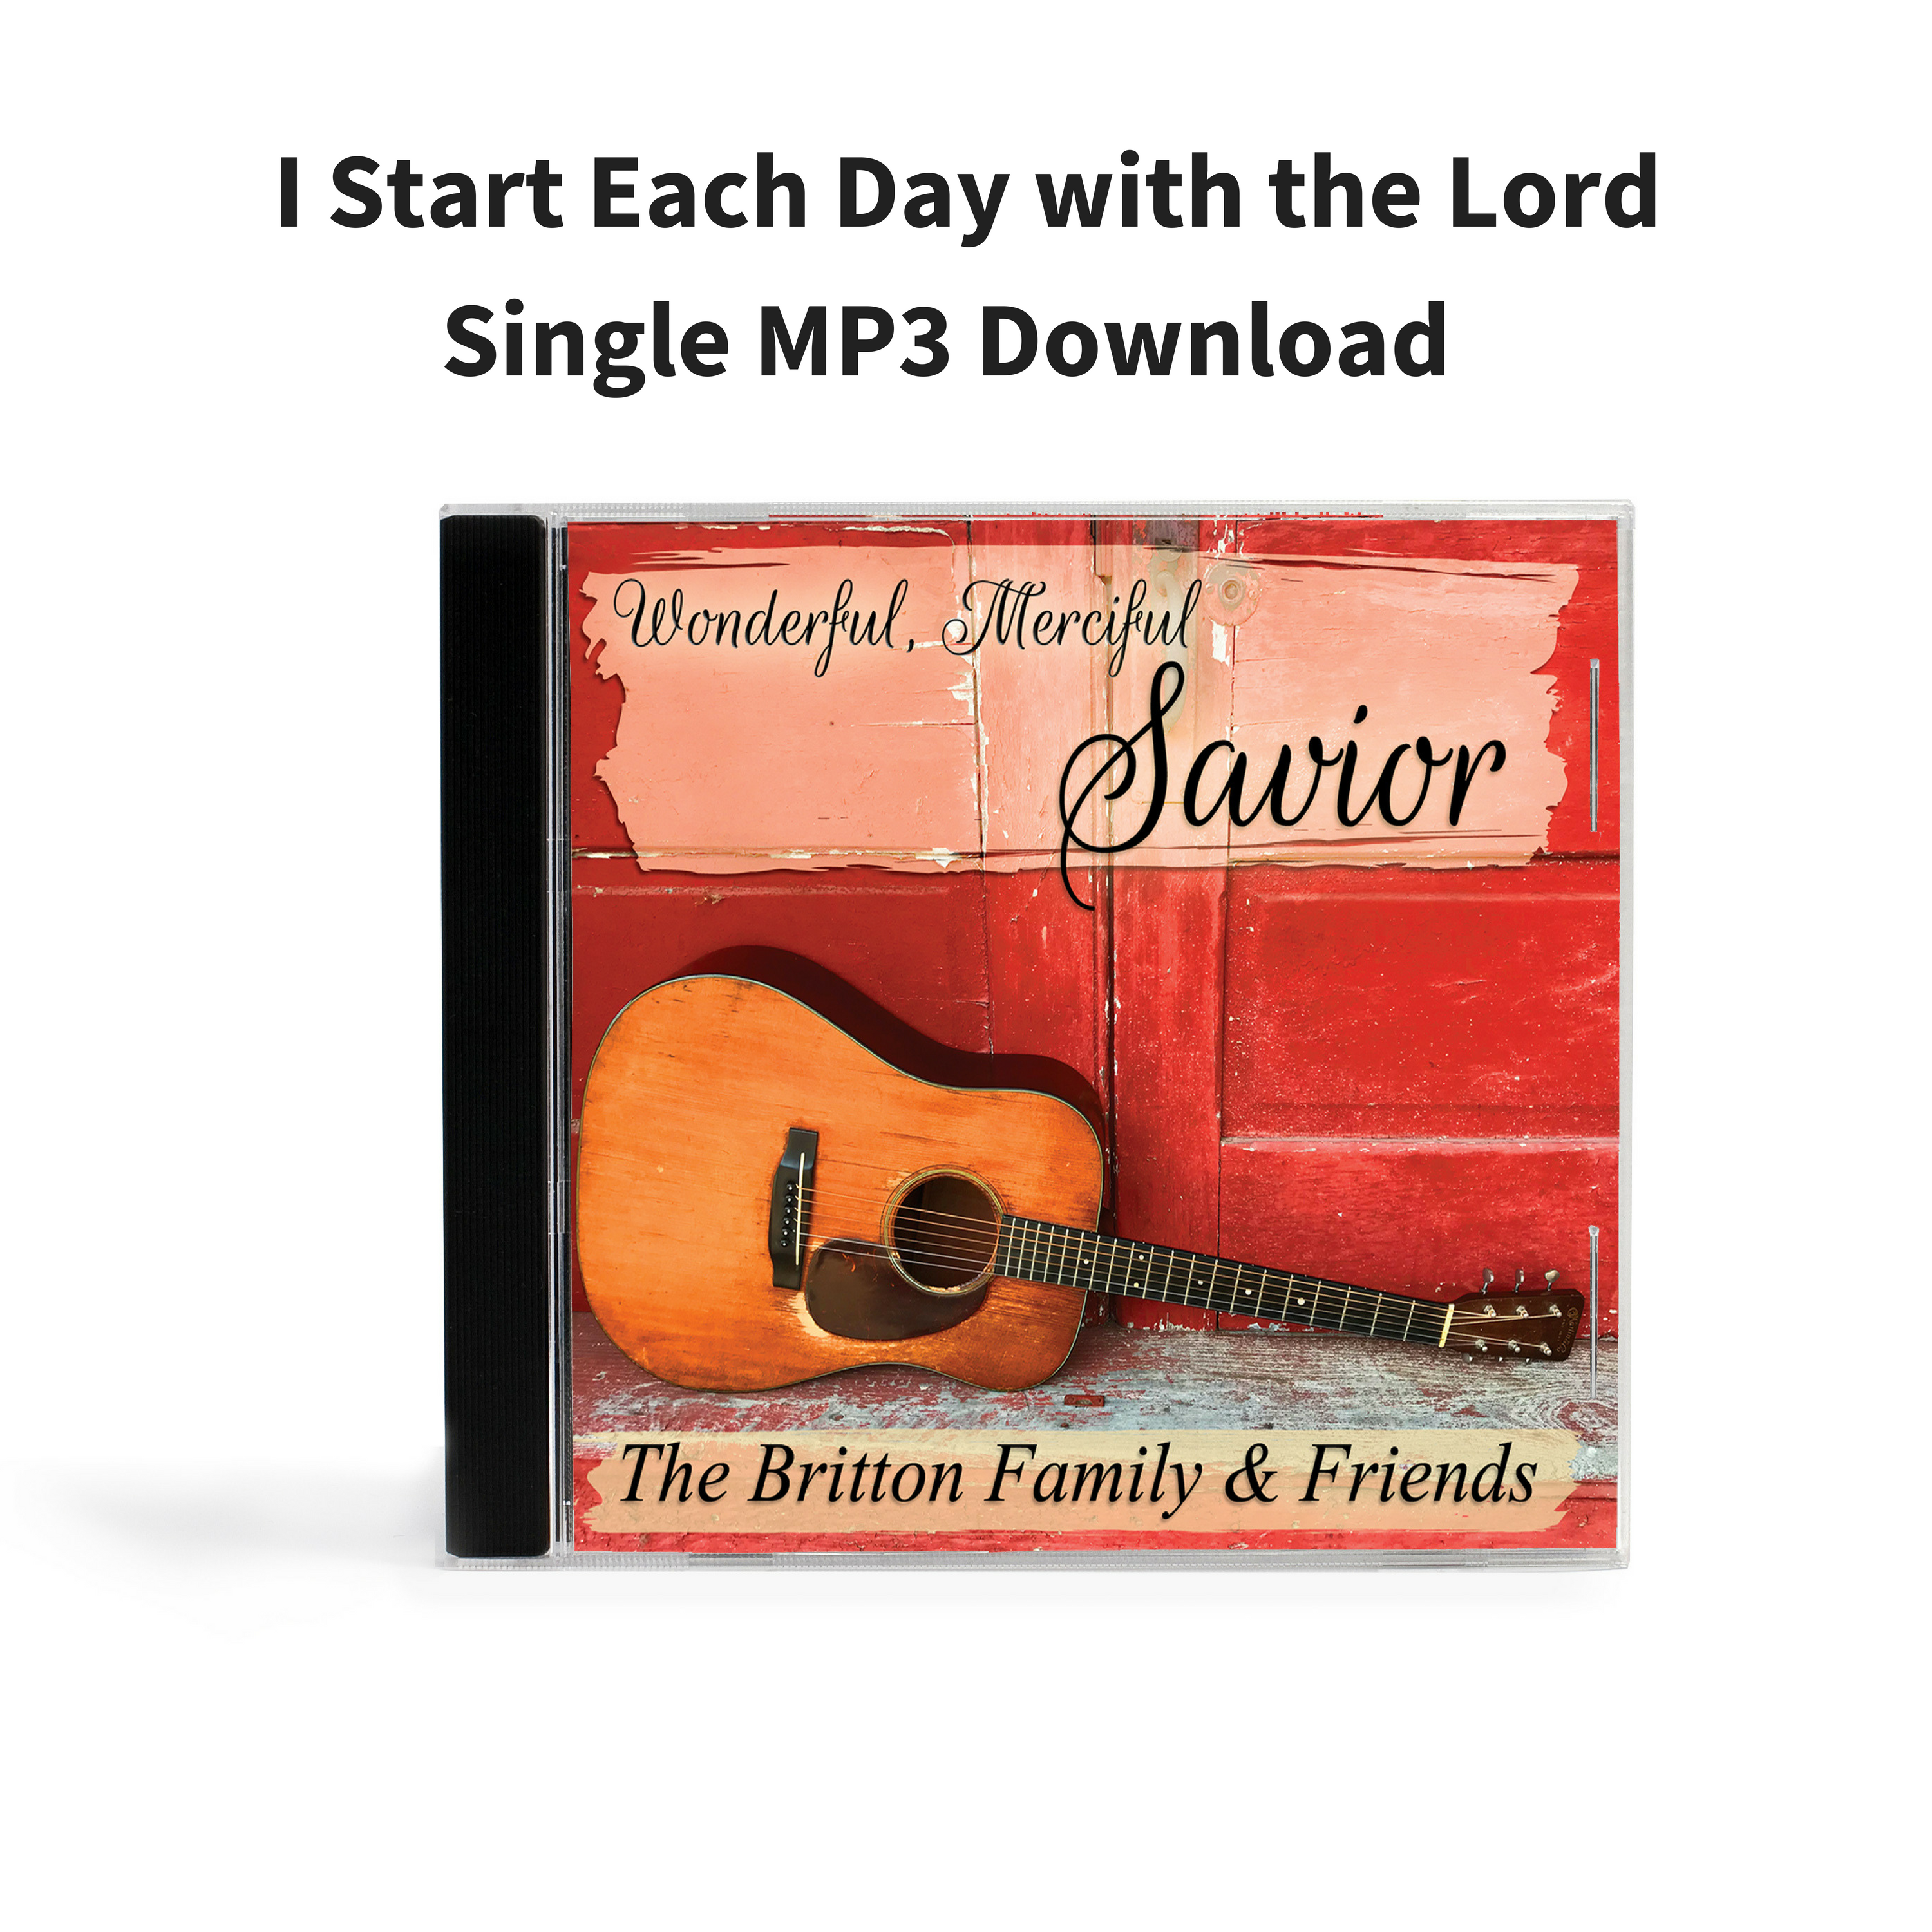 I Start Each Day with the Lord - Single MP3 Download 000007